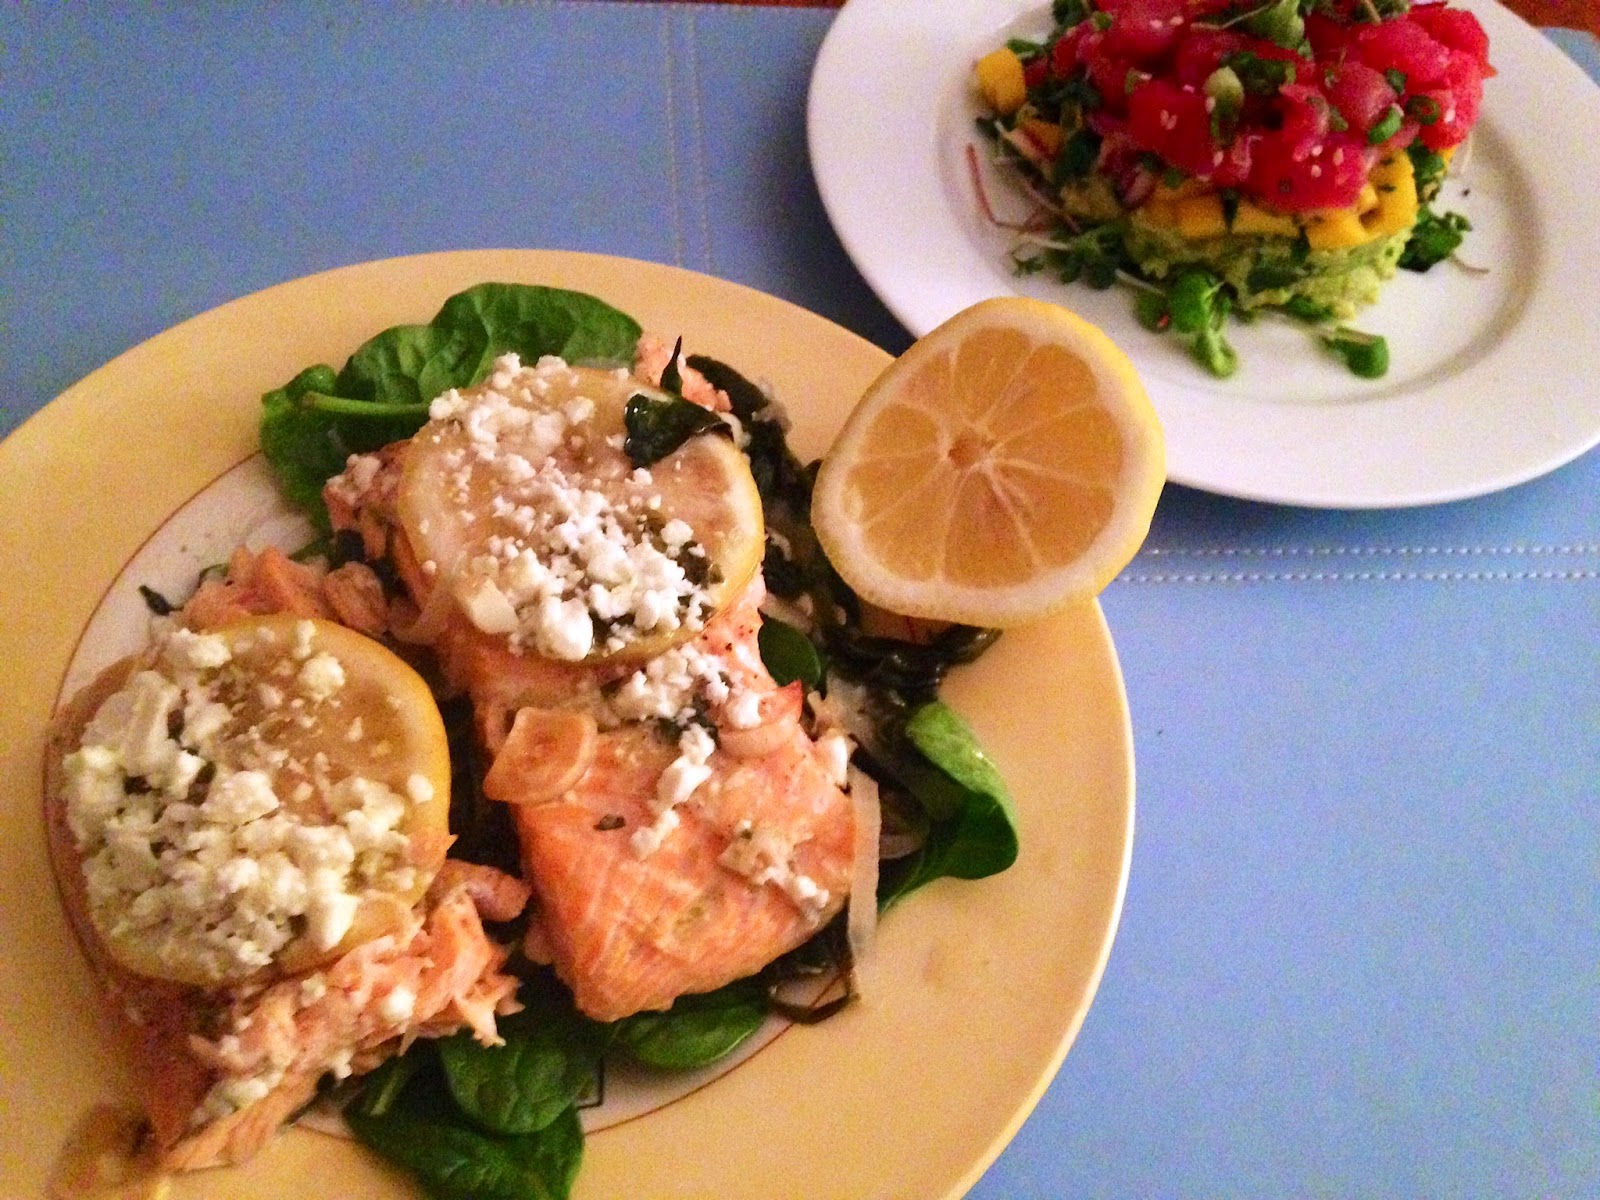 Salmon Baked in Parchment with Spinach and Feta - And What I Ate